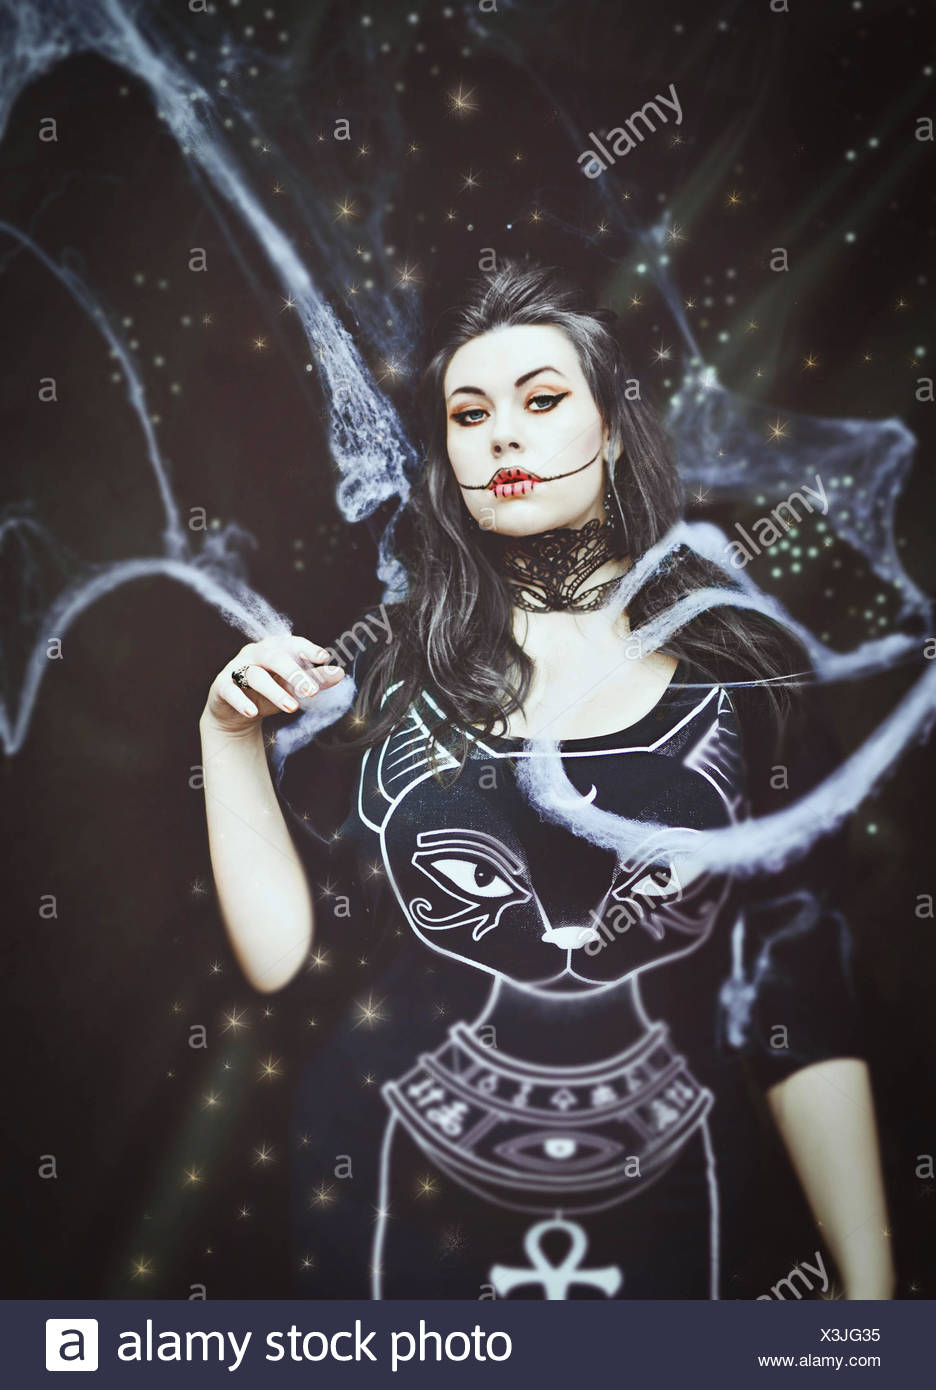 Witch halloween studio portrait - Stock Image